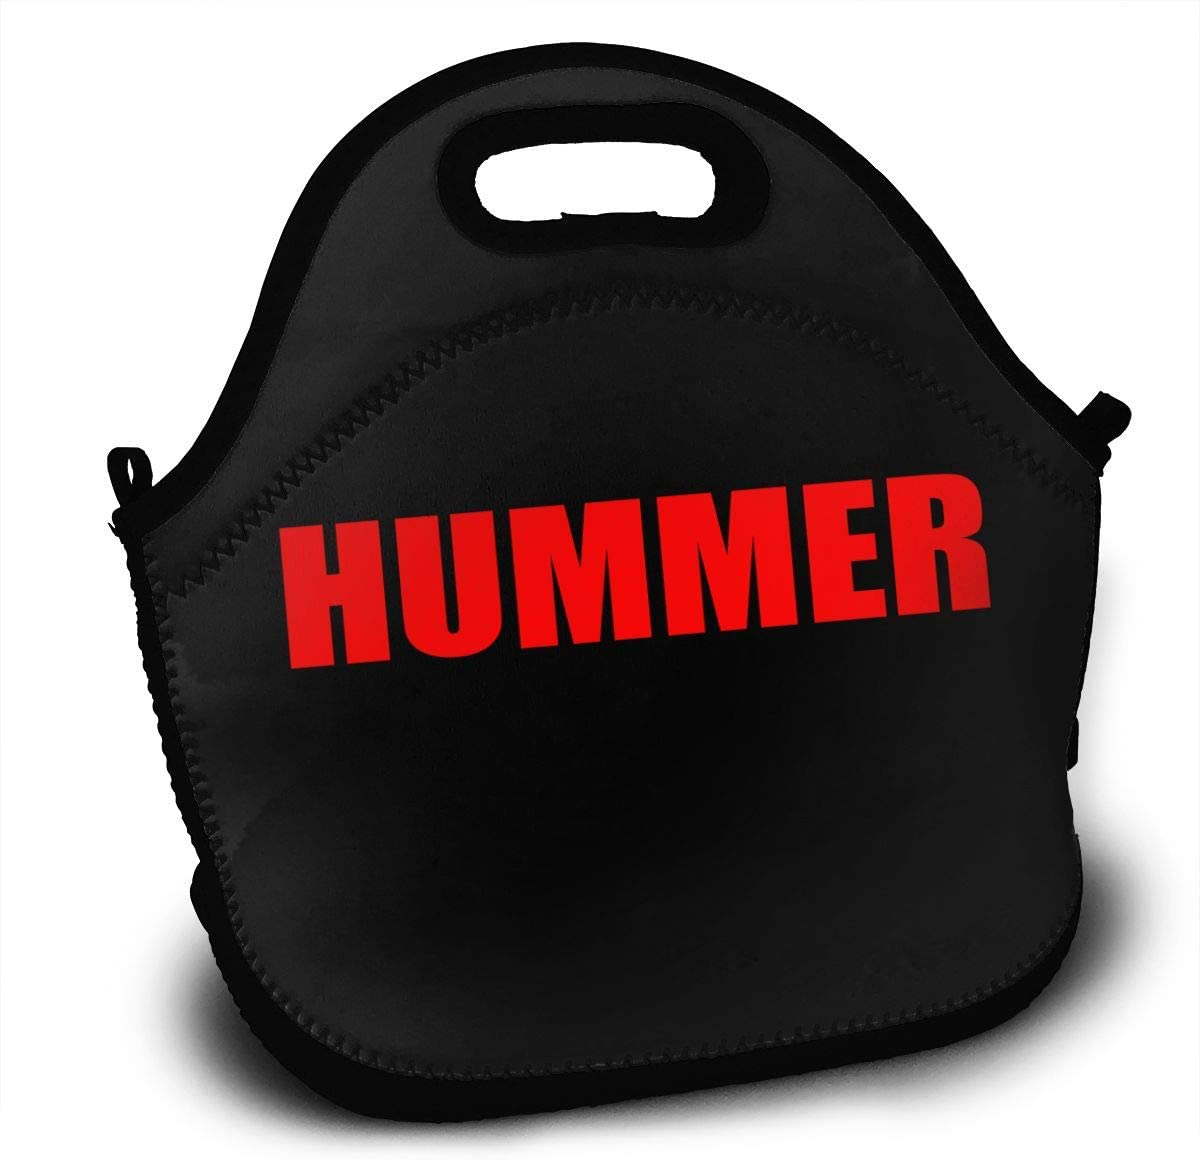 Hummer Logo Lunch Bag Lunch Box Thermal Insulated Lunch Pouch Picnic Bag for School Cross Body Backpack